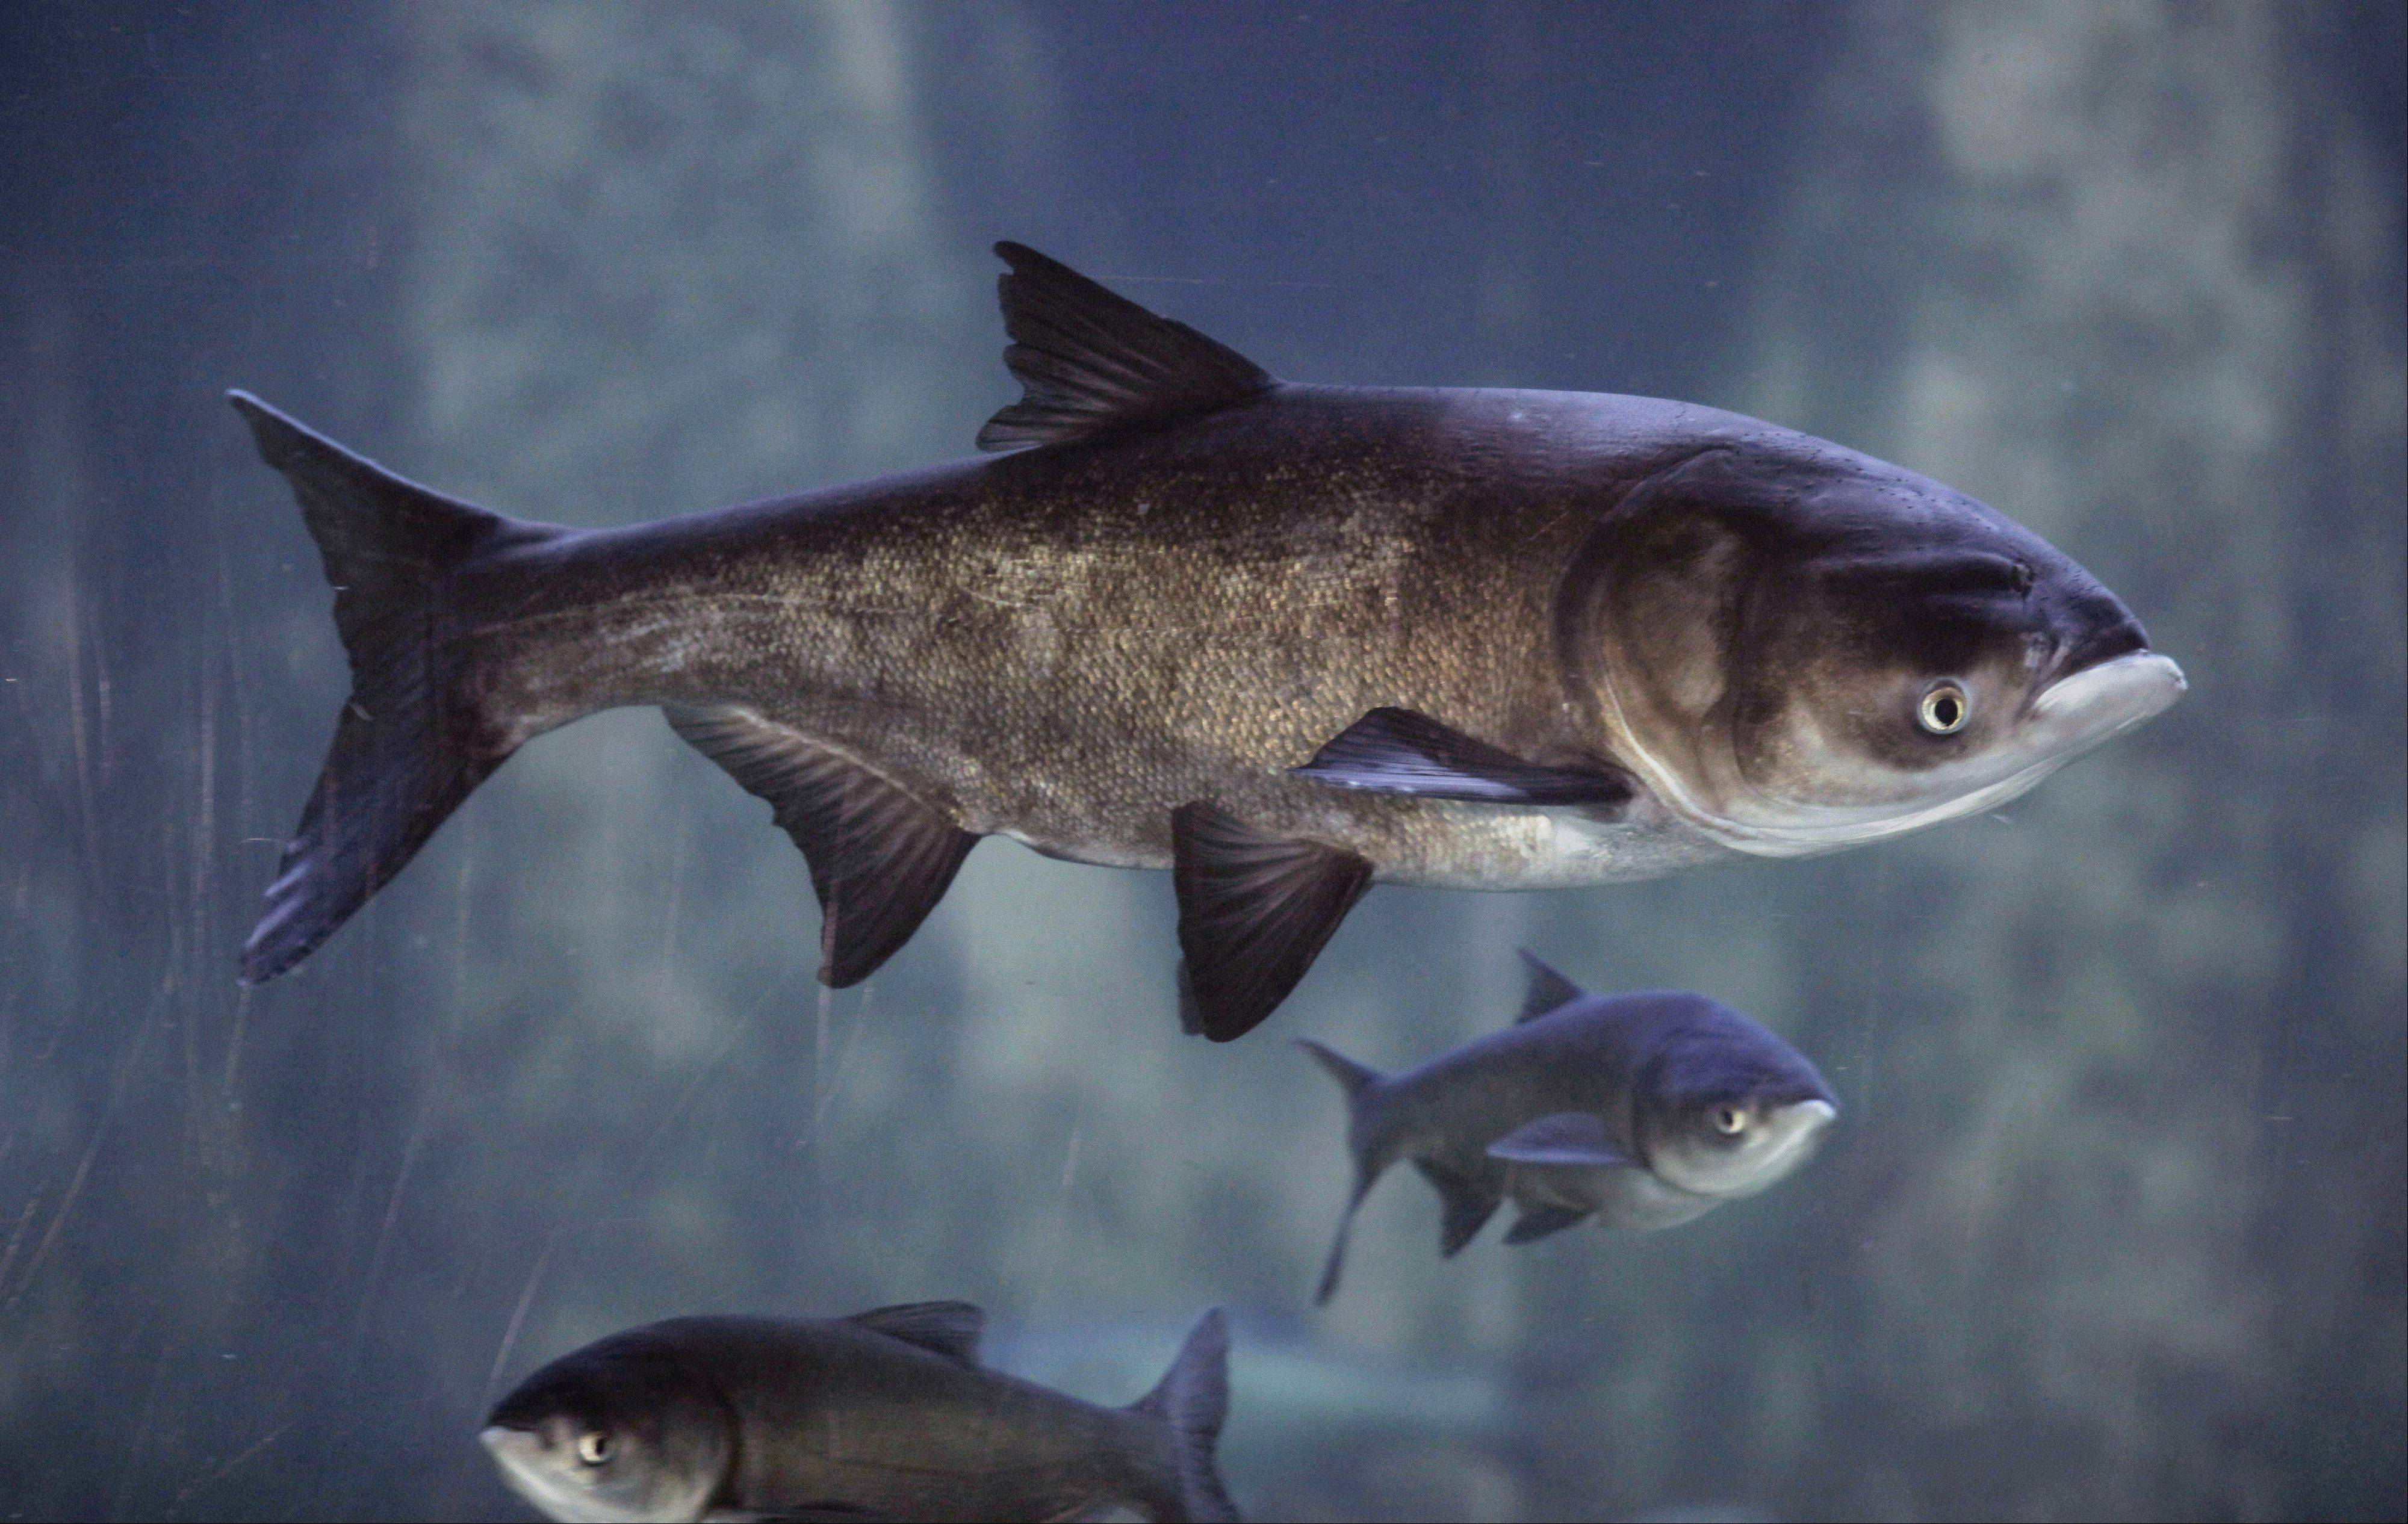 Two species of invasive Asian carp may be able to spawn in more Great Lakes tributaries than previously thought, according to a U.S. Geological Survey report on Tuesday.